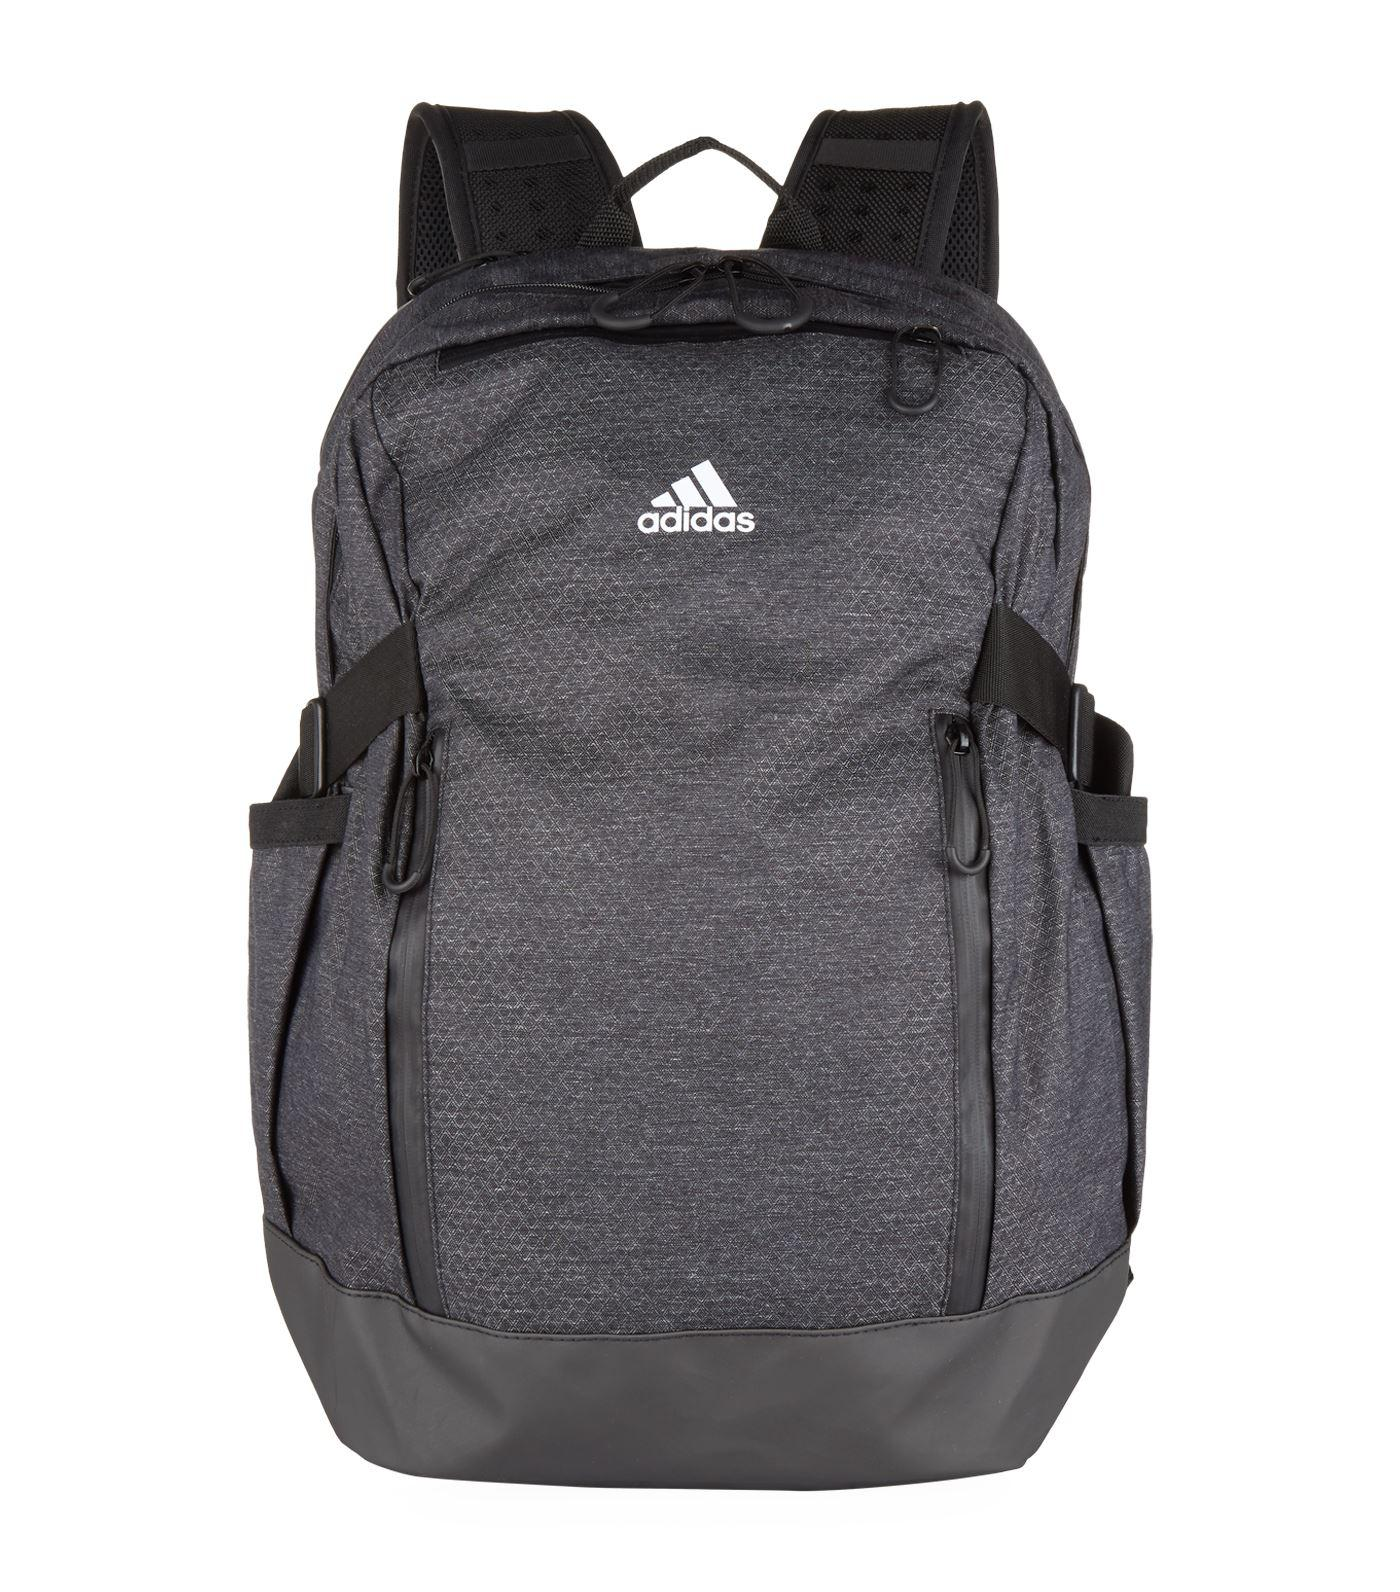 sale official shop look for Power Urban Backpack